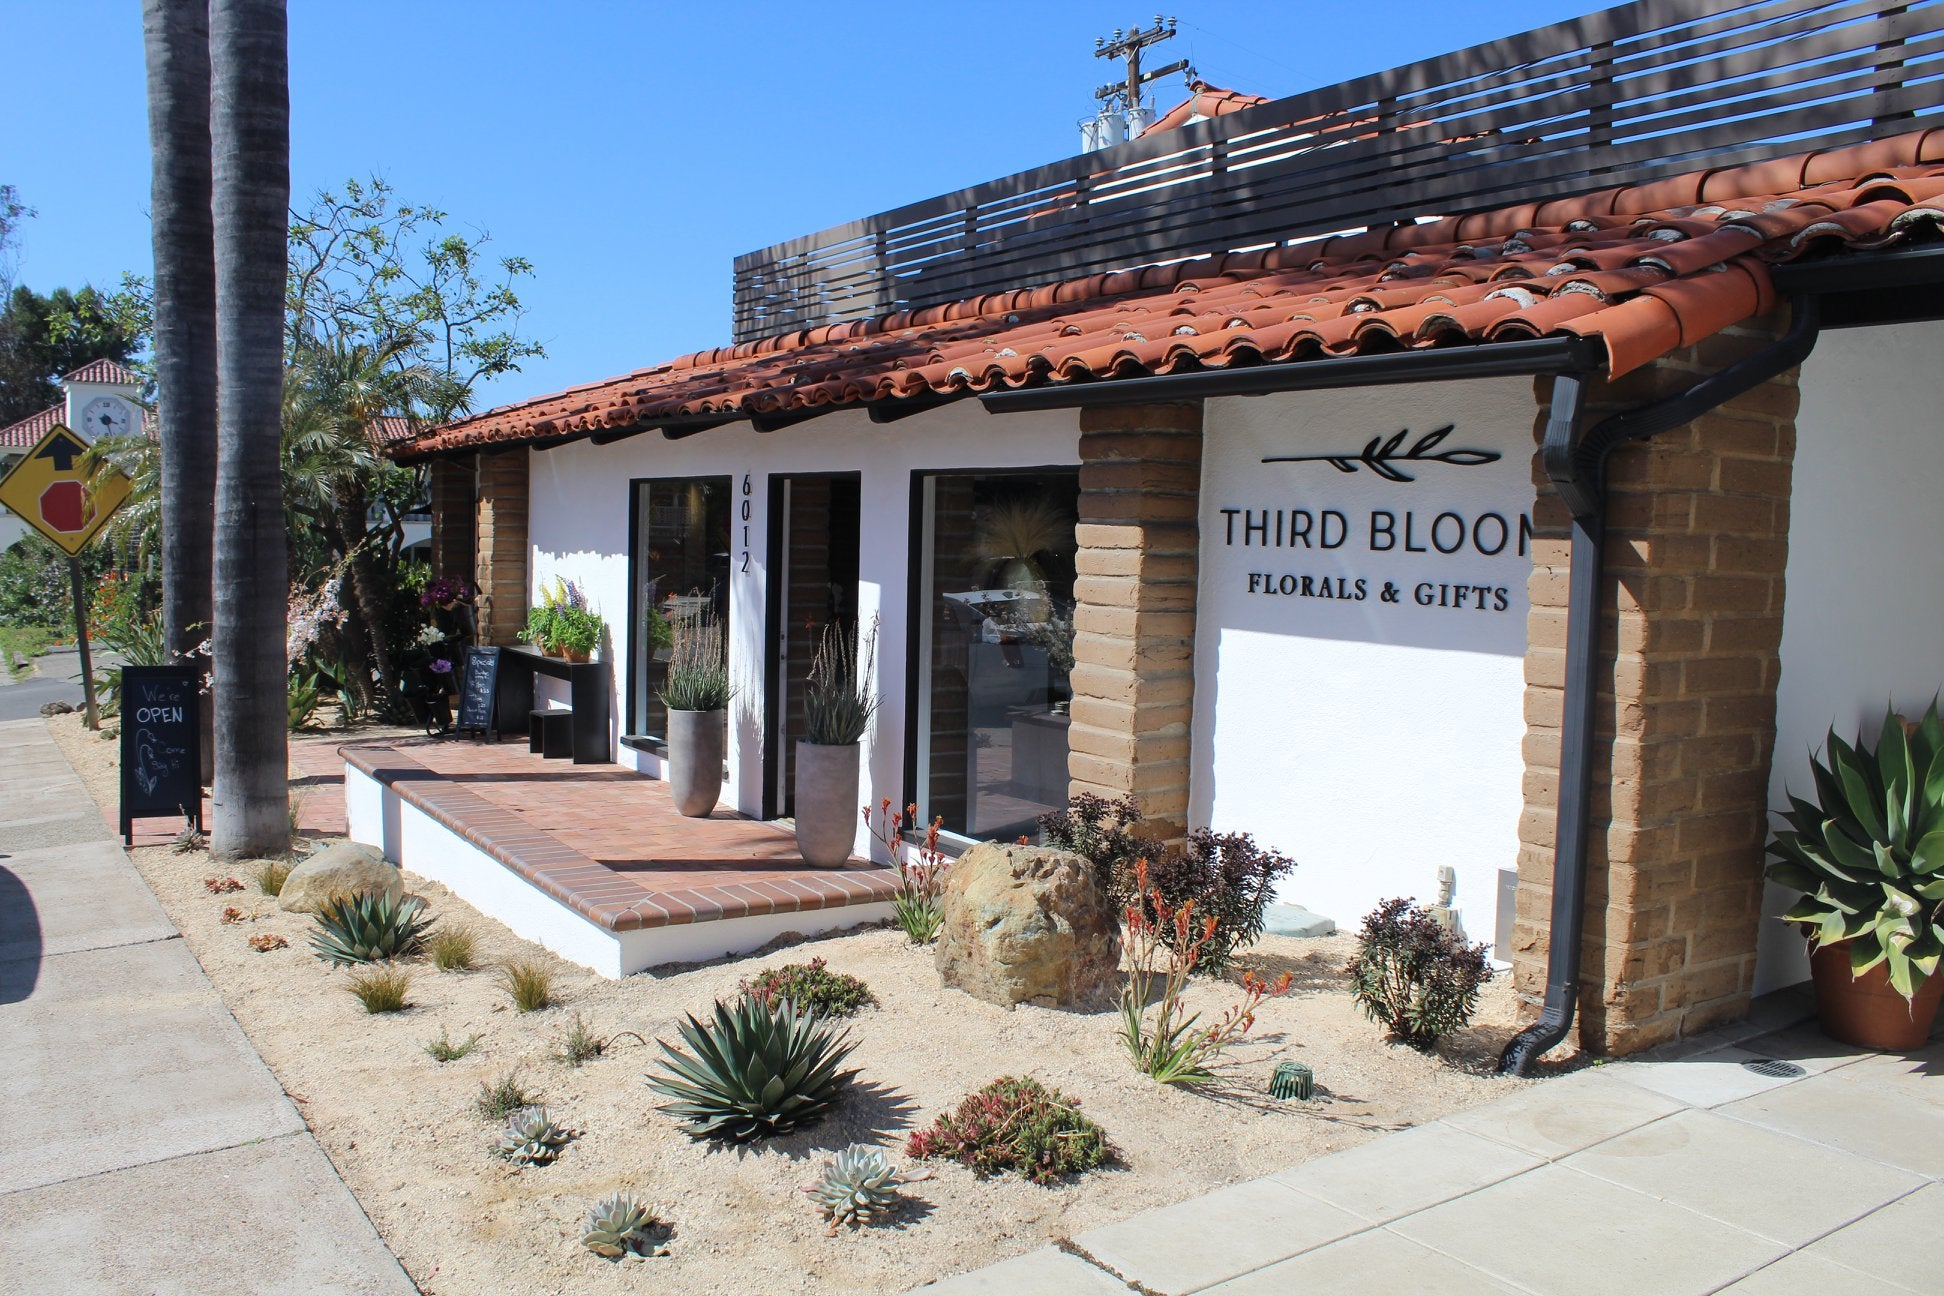 Exterior renovation done to Rancho Santa Fe Flowers and Gifts old shop now Third Bloom